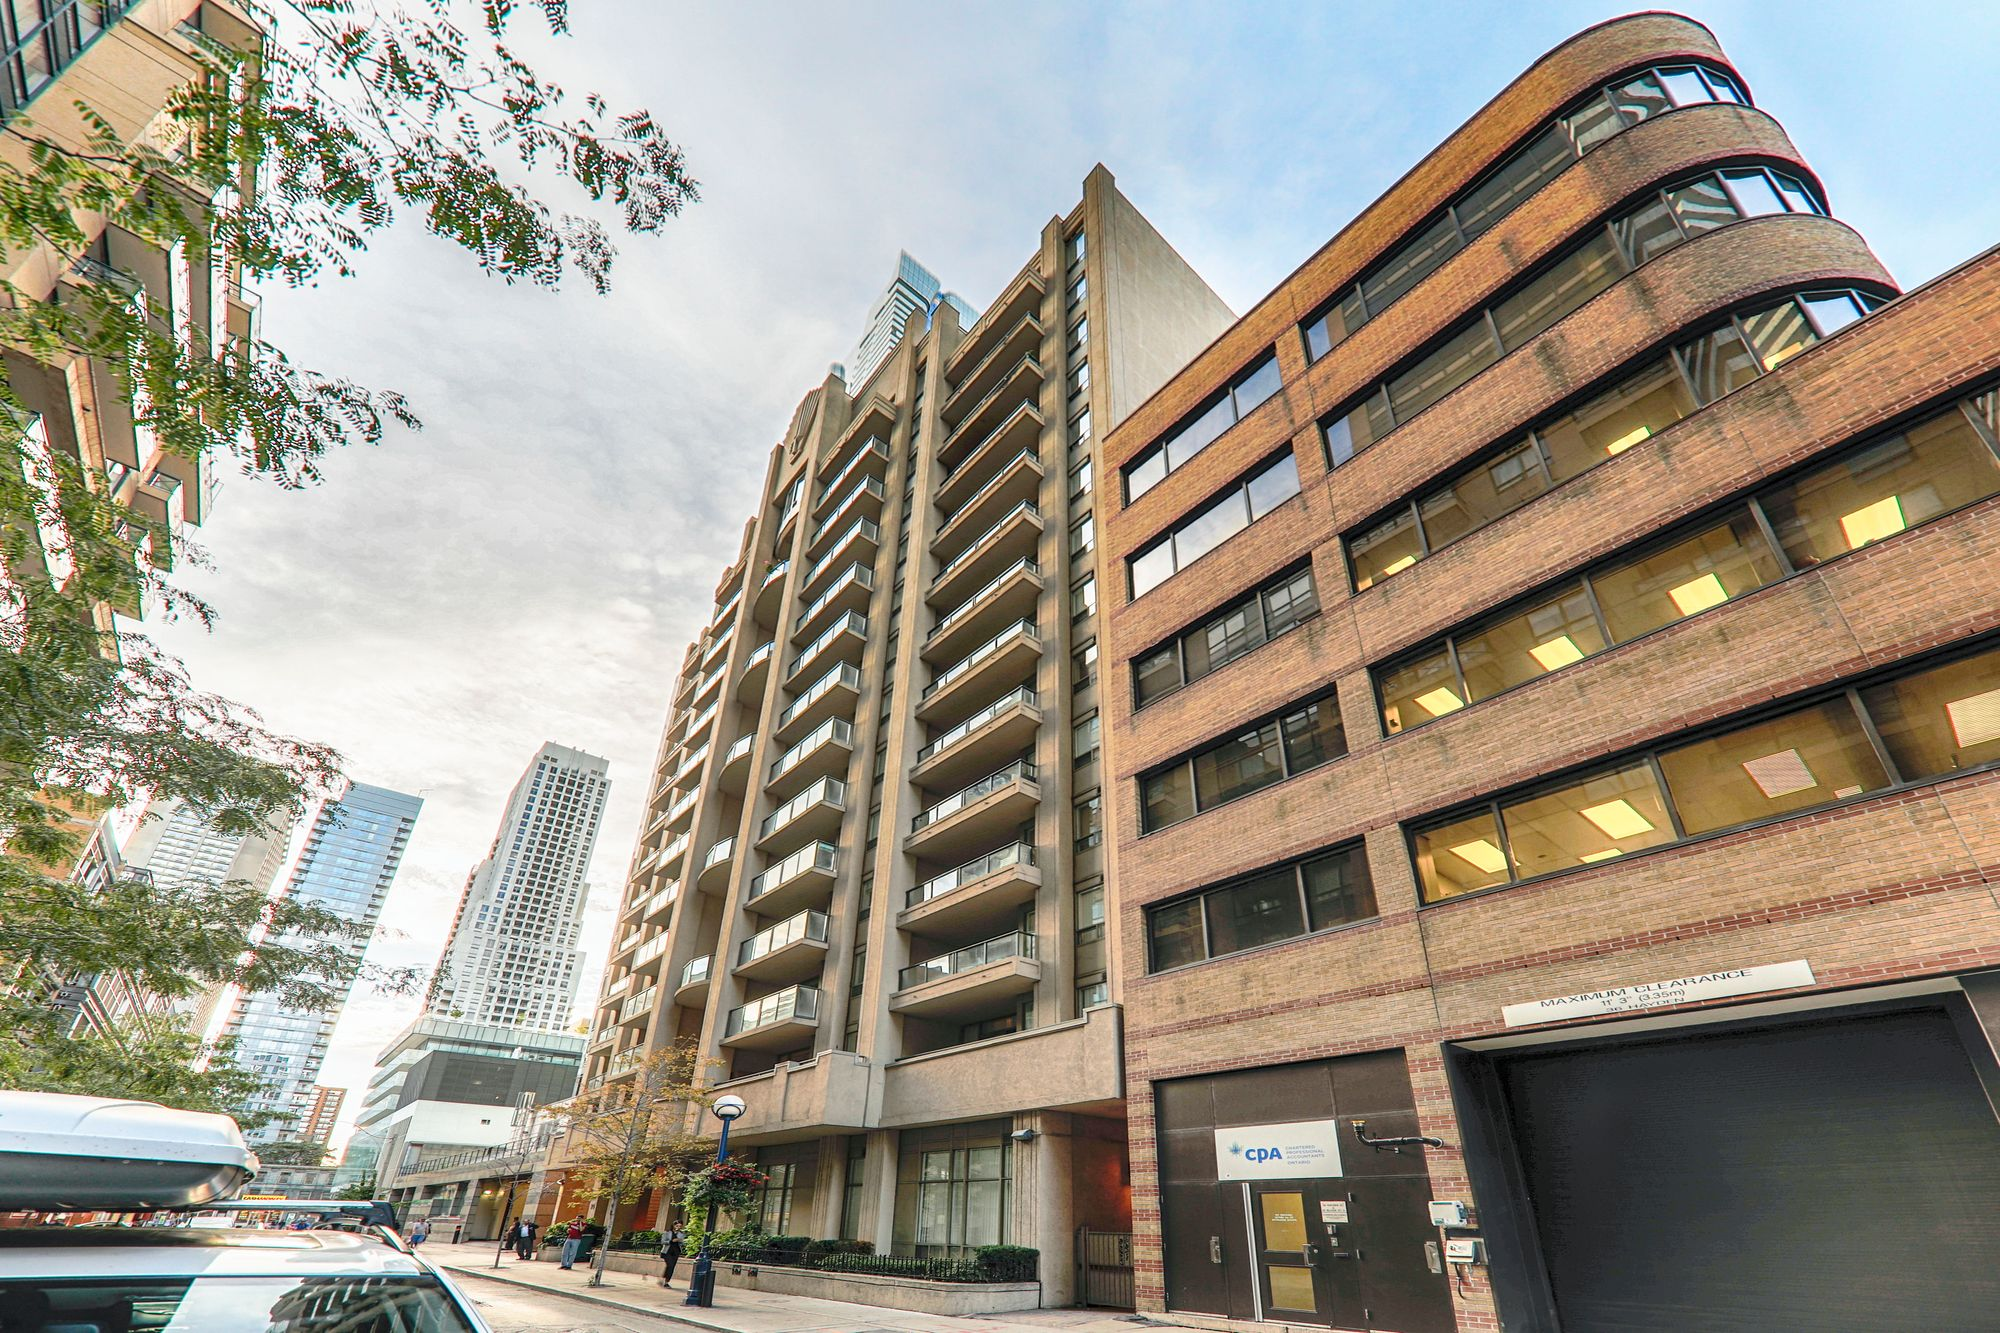 Tiffany Terrace at 30 Hayden St. This condo is located in  Downtown, Toronto - image #2 of 4 by Strata.ca